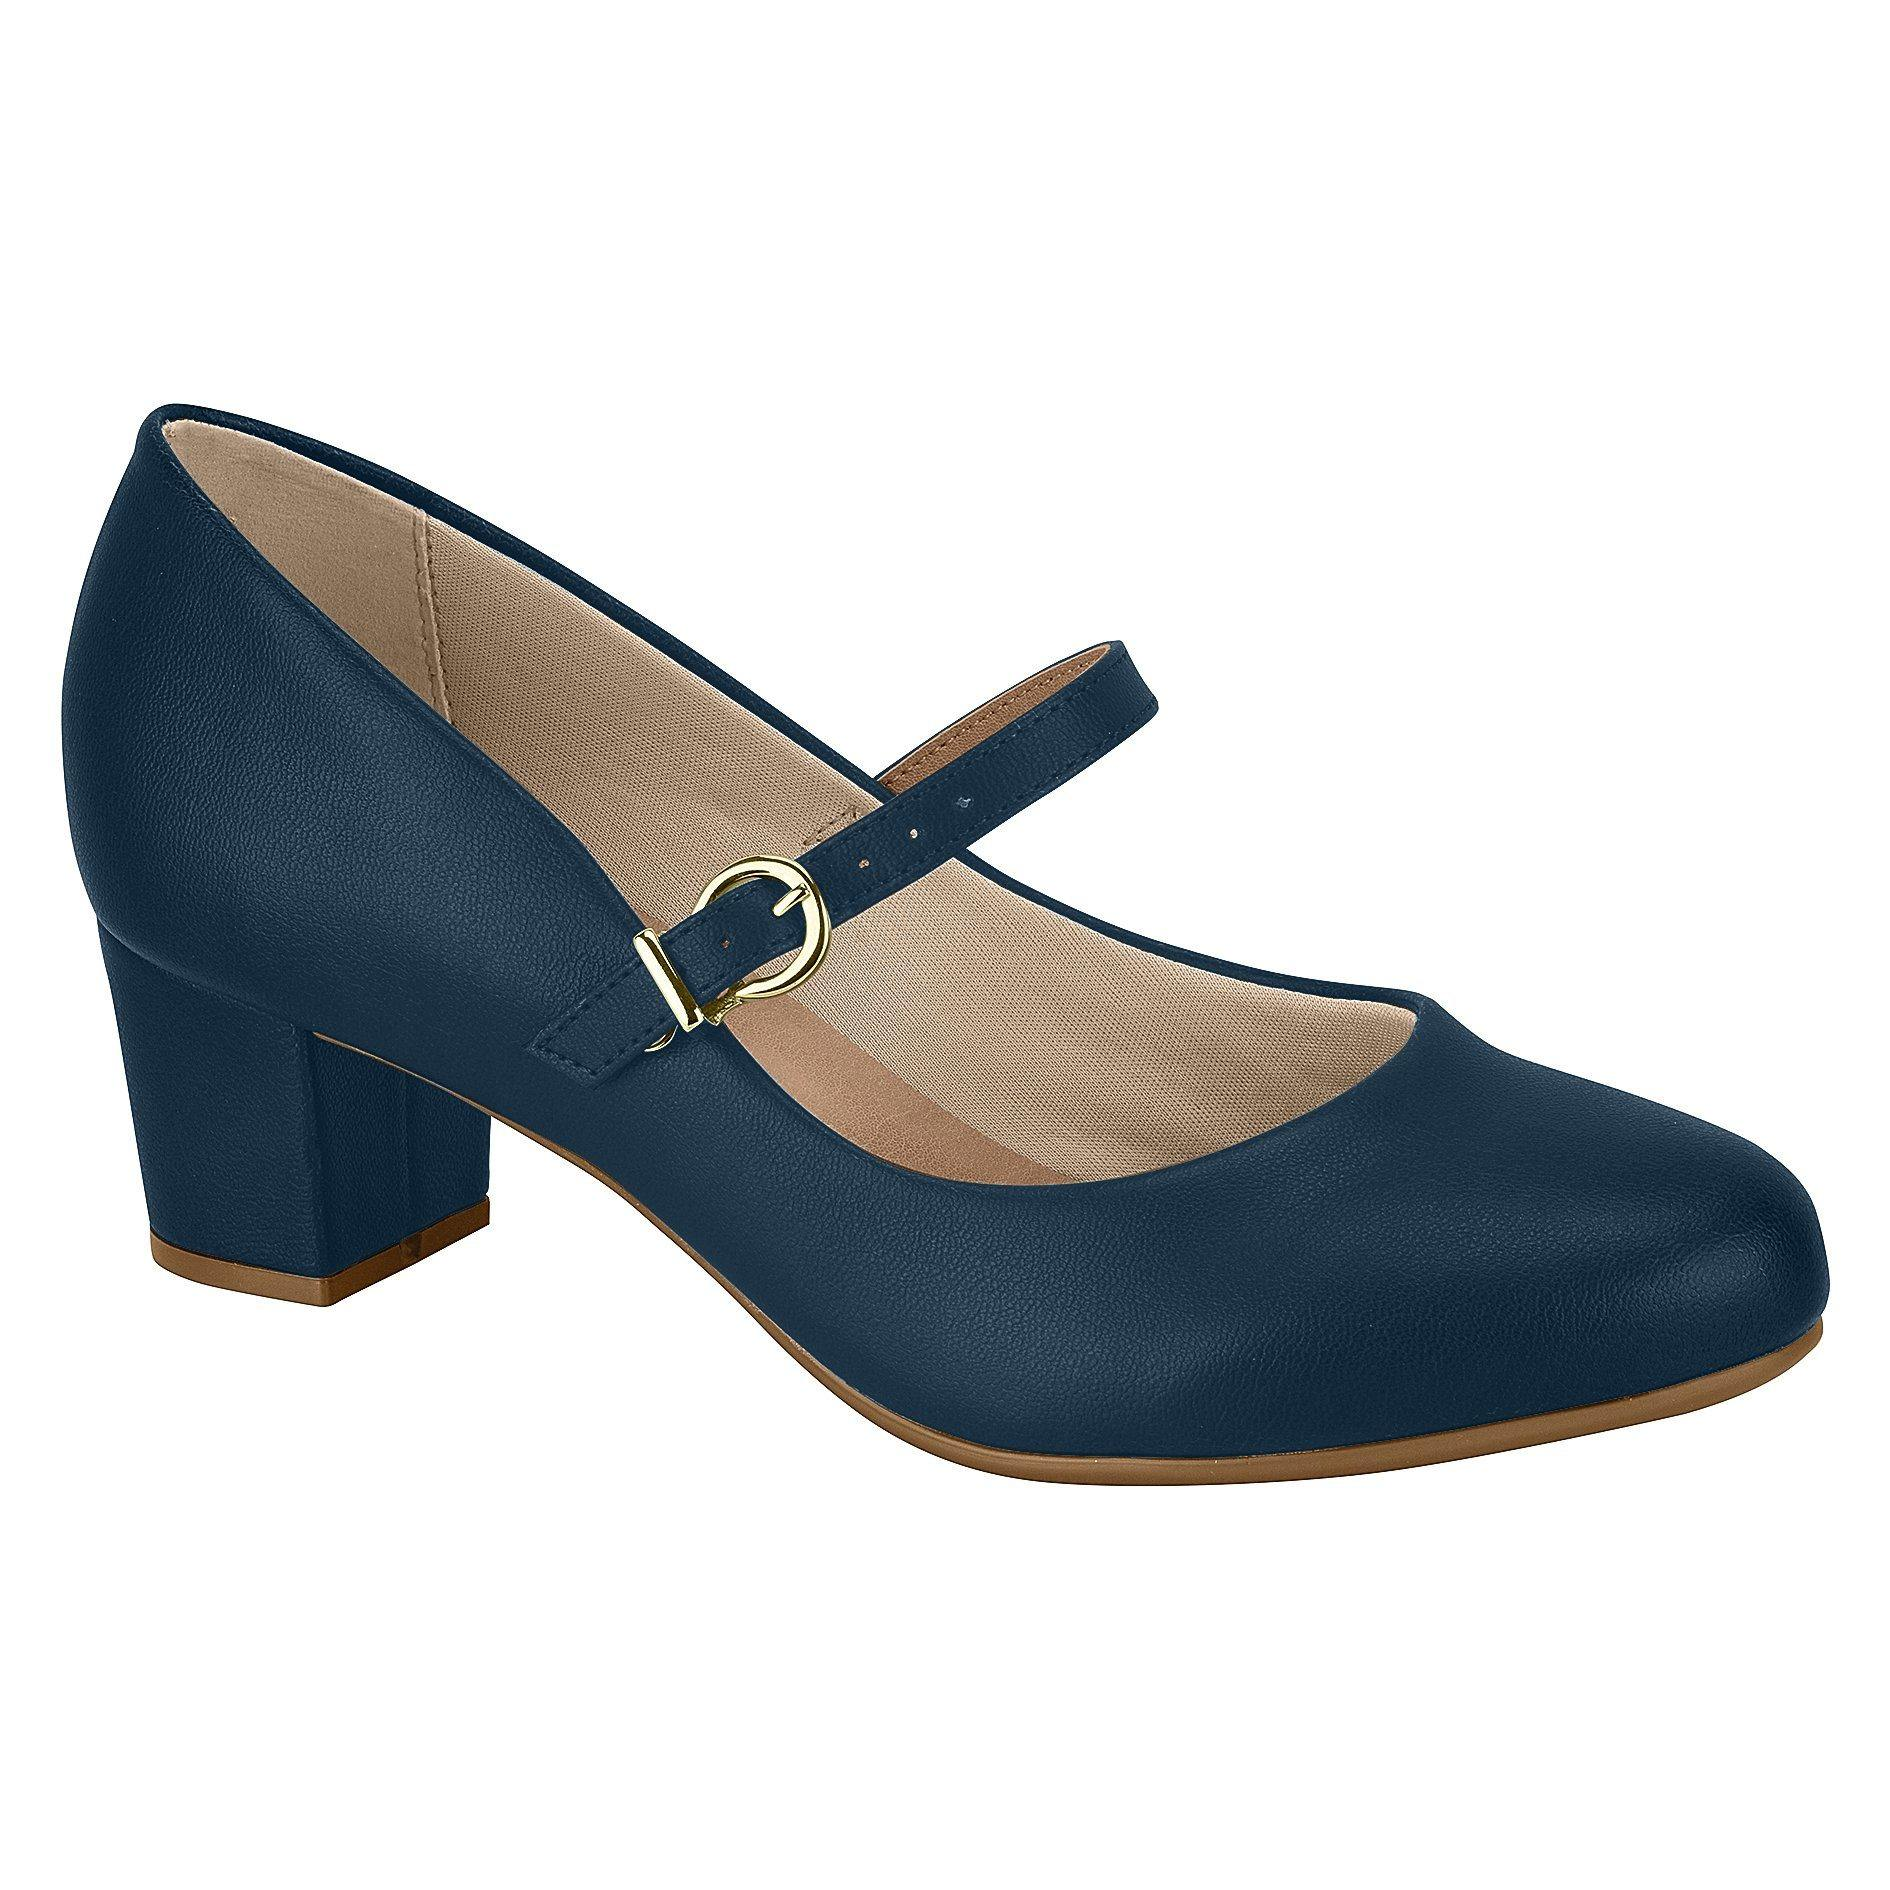 Beira Rio 4777-375 Low Heel Mary-Jane Pump in Navy Napa